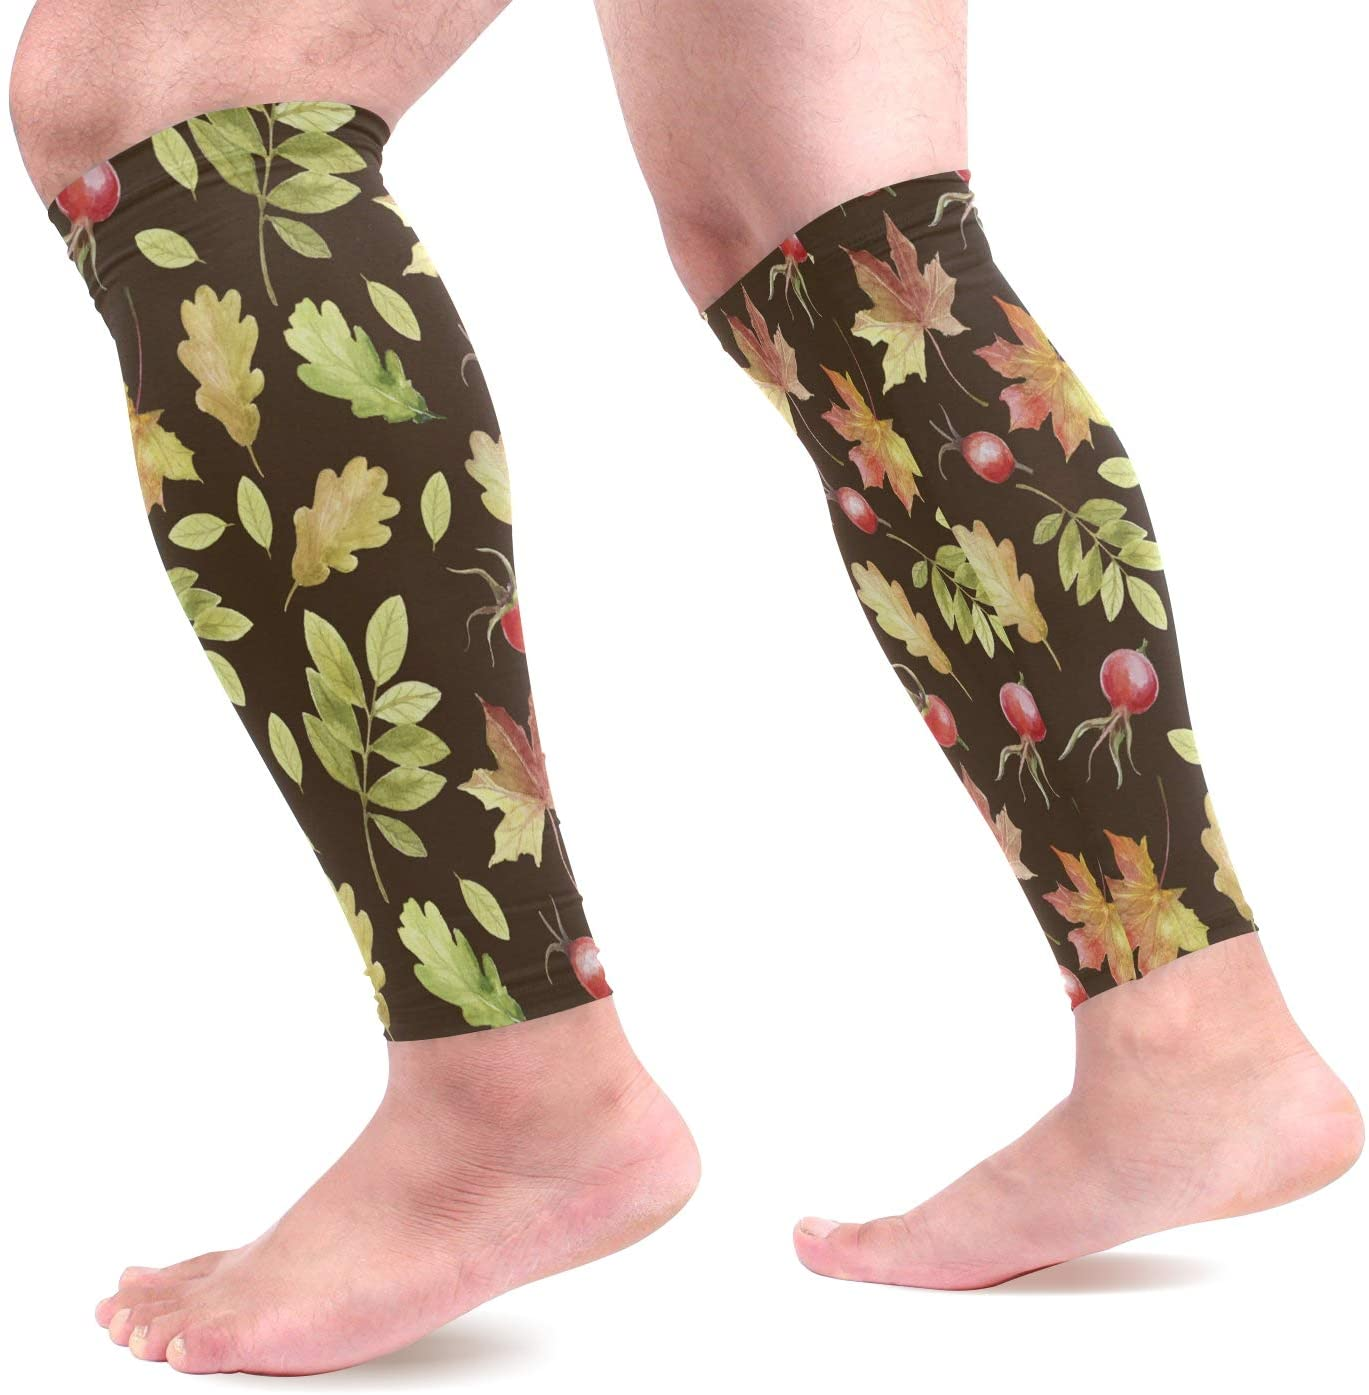 Calf Compression Sleeves Women Chic Watercolor Autumn Nature Unique Footless Calf Compression Socks for Running, Shin Splint, Calf Pain Relief, Leg Support Sleeve for Running, Air Nurses, Cycling Men